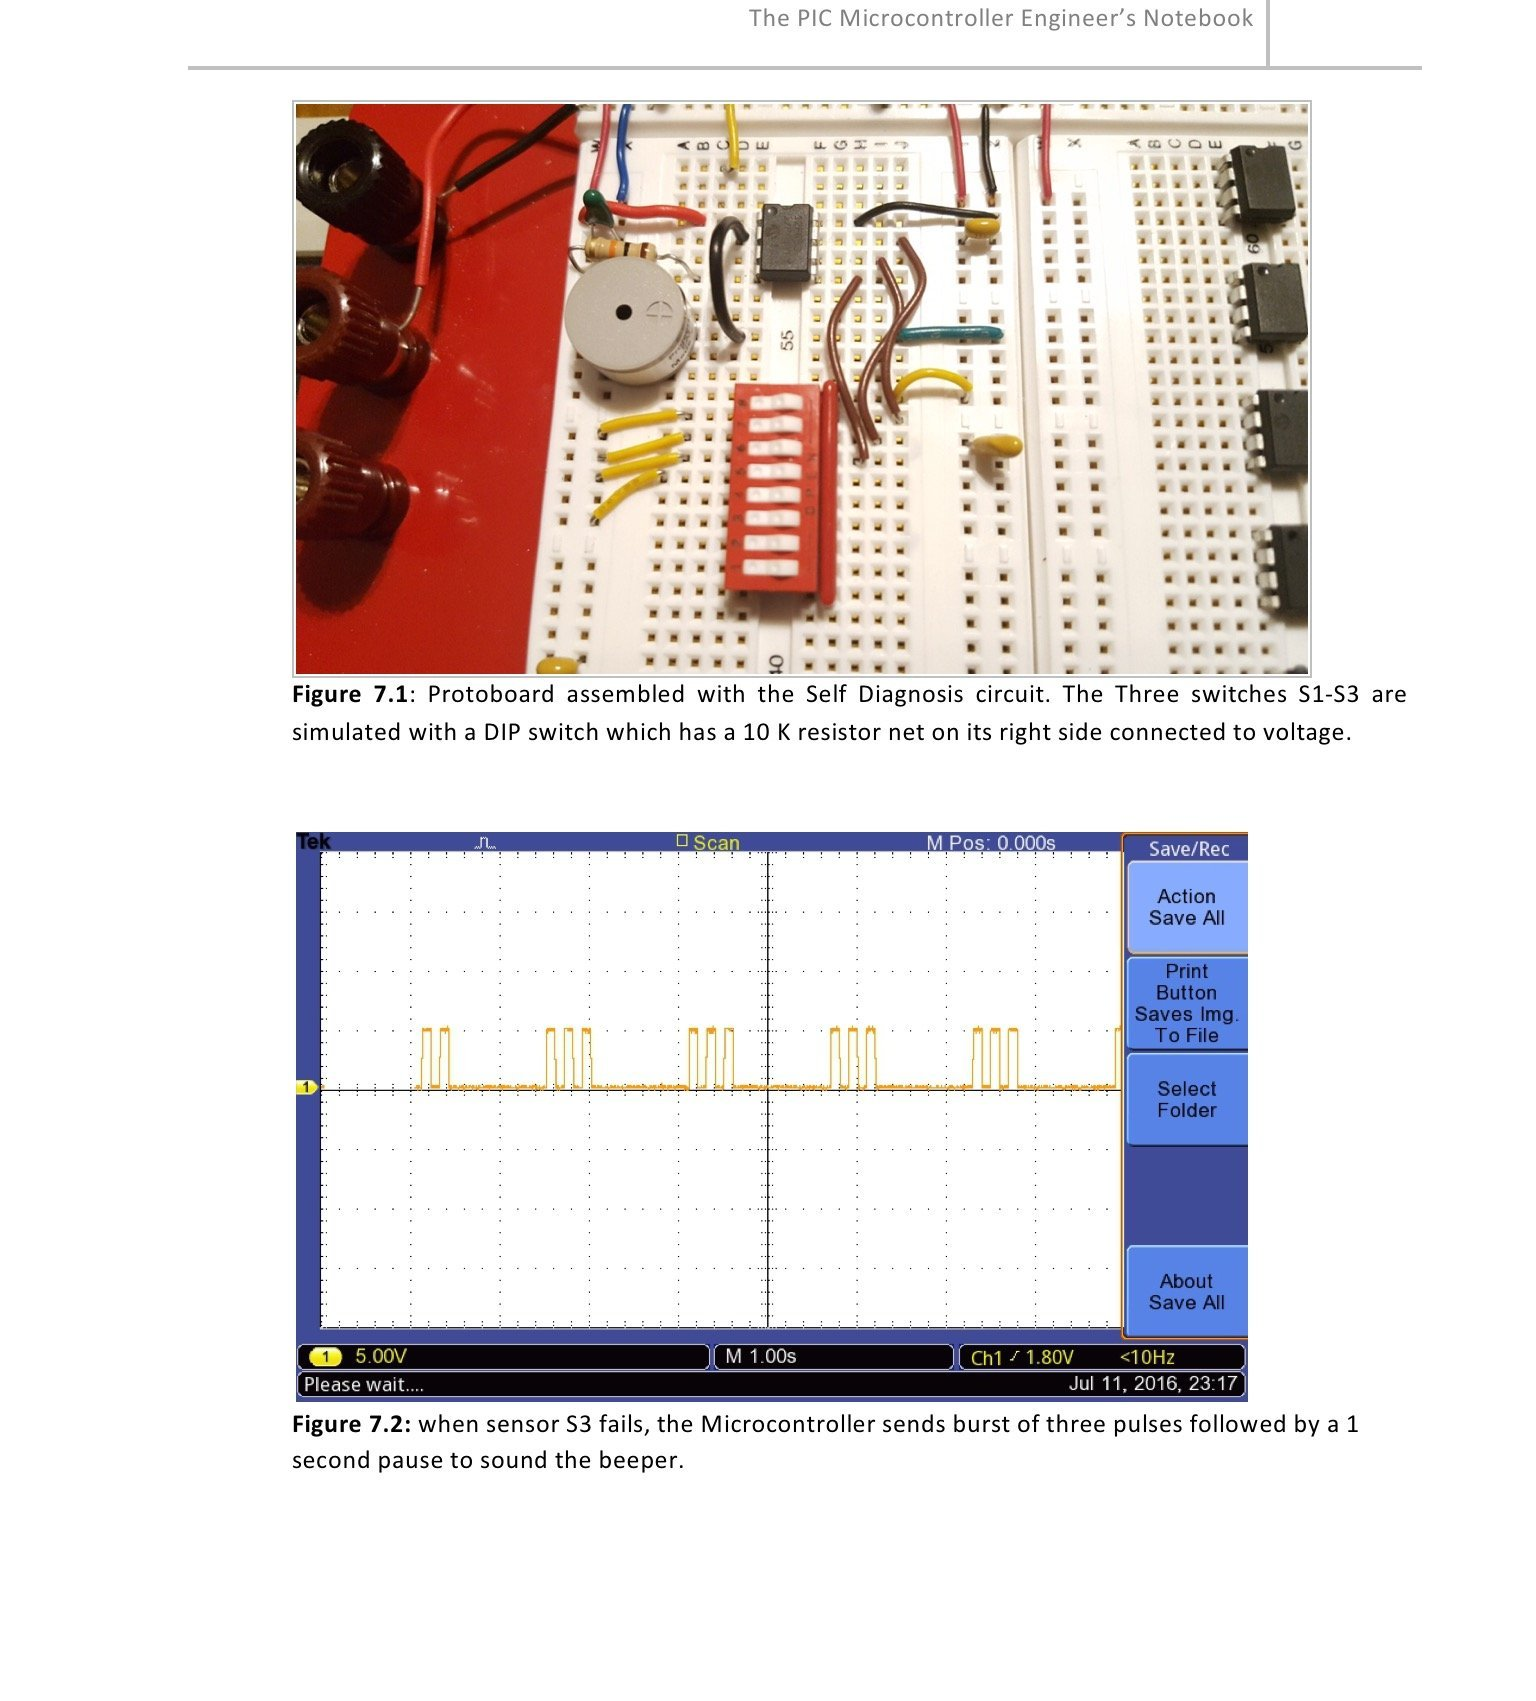 Microcontroller Engineers Notebook 12 Experiments Pic12f683 So This Is Itnow Use Your Pic16f877a To Give 5v Integrated Circuits Microchips Instrumentation Analog Digital Thermometer Lcd Display Leds